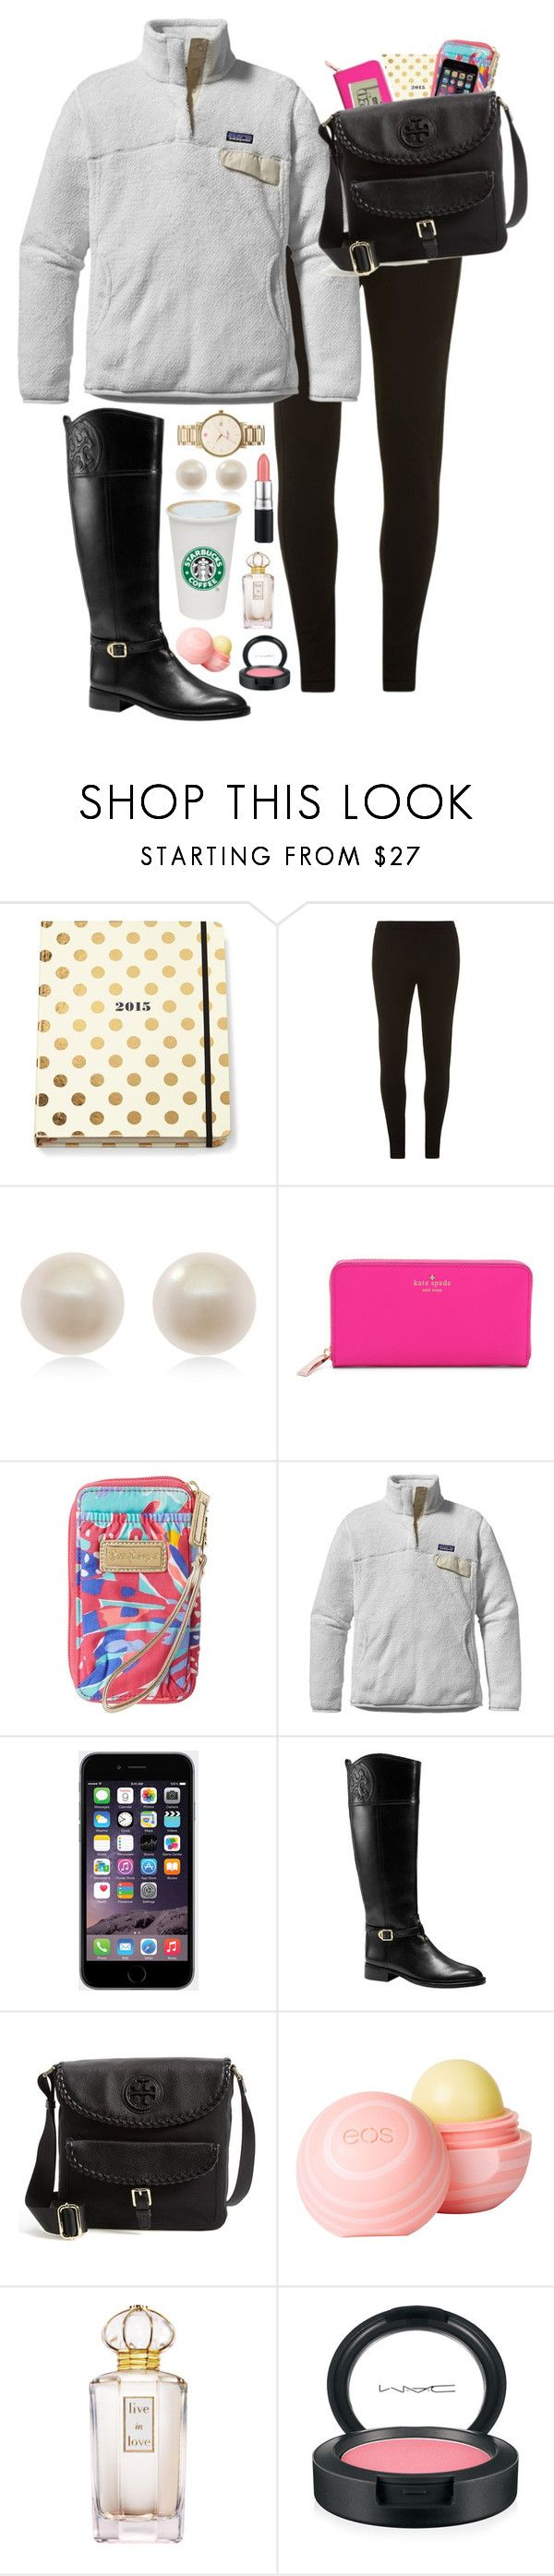 """Black Friday Shopping"" by preppyoutfitsdaily ❤ liked on Polyvore featuring moda, Kate Spade, Dorothy Perkins, Links of London, Lilly Pulitzer, Patagonia, Tory Burch, Jack Spade, MAC Cosmetics e dELiA*s"